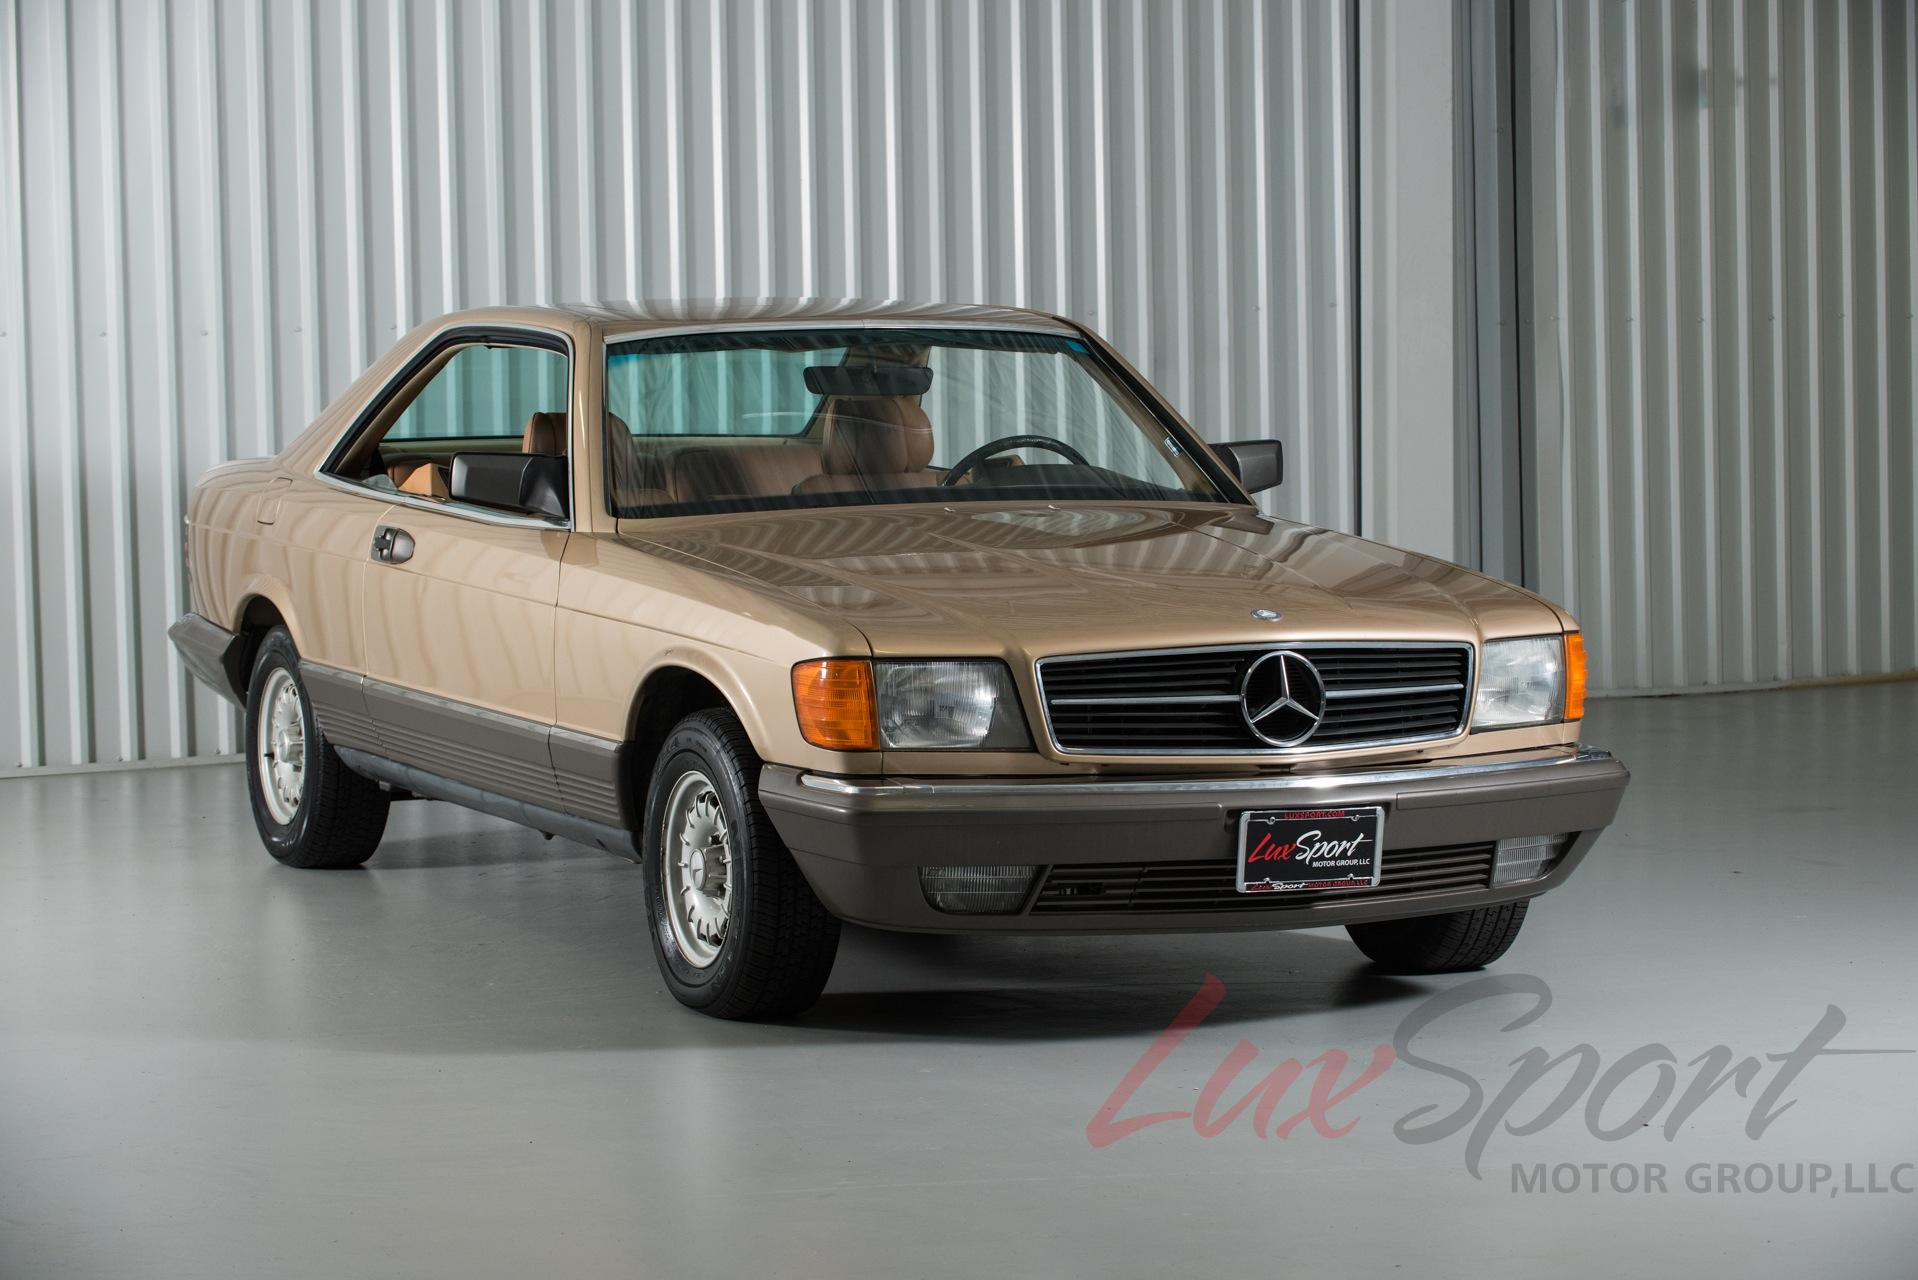 1983 mercedes benz 500sec coupe stock 1985103 for sale for How to buy mercedes benz stock